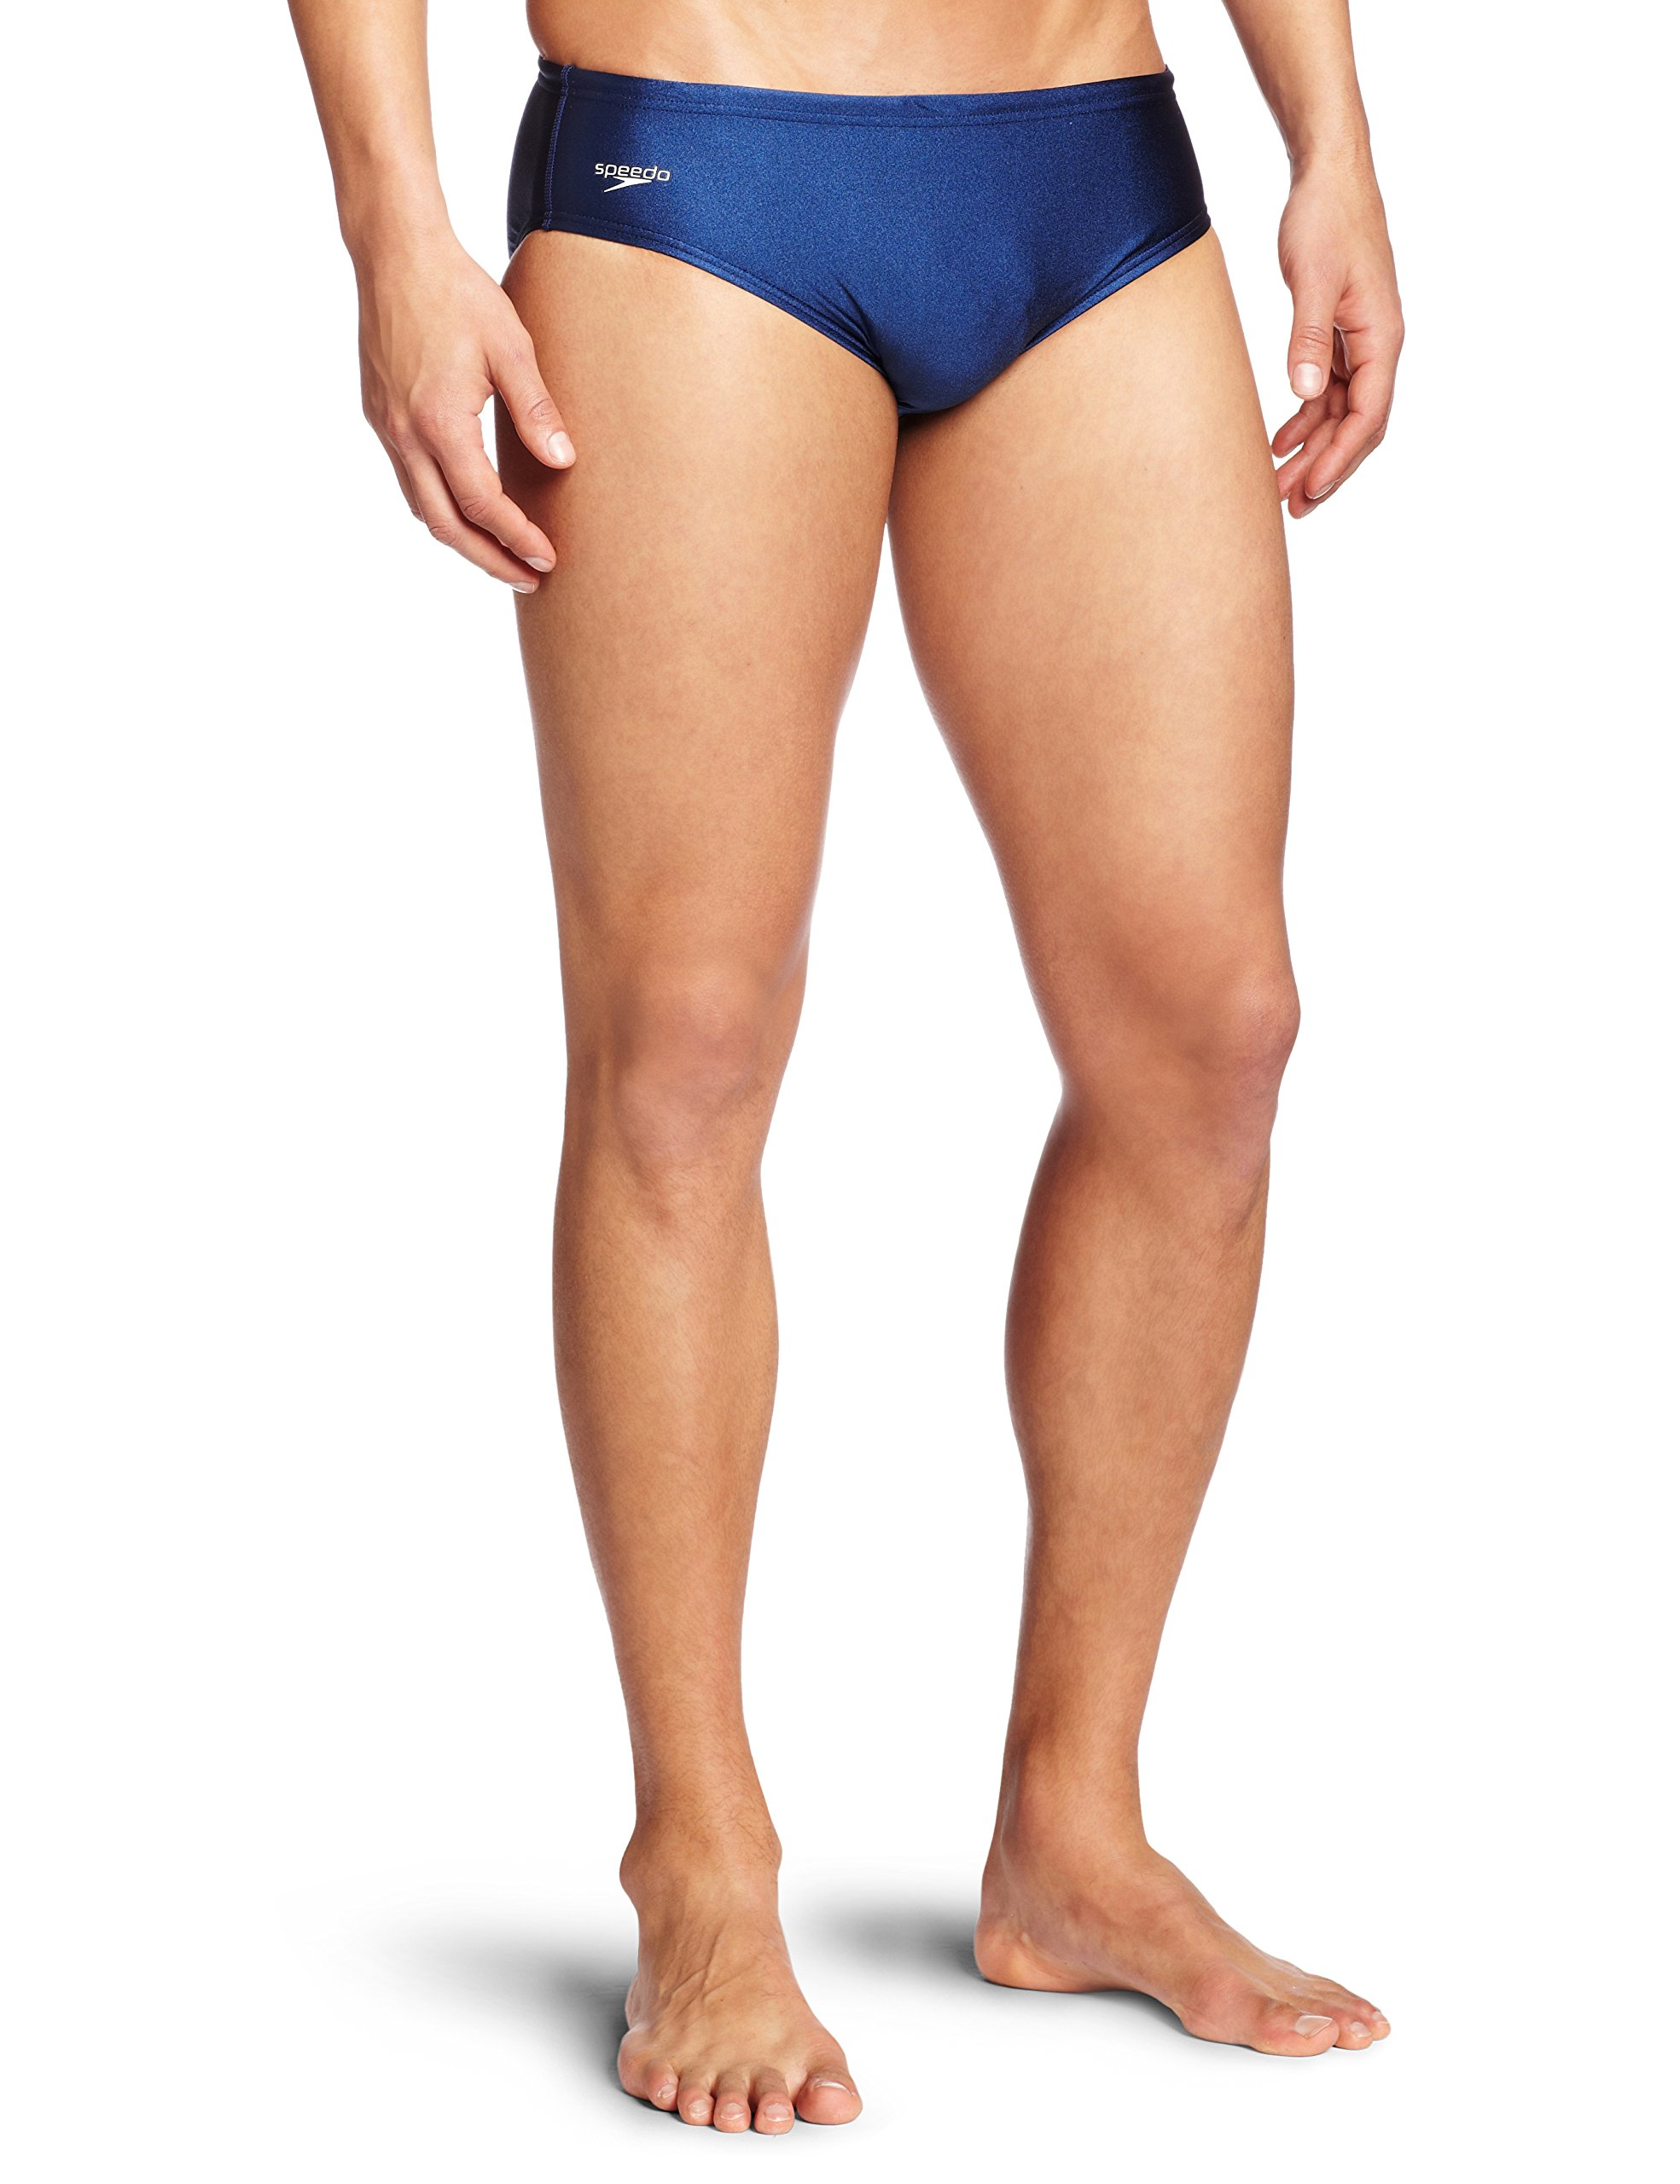 Speedo Mens Swimsuit Brief Powerflex Eco Solid Adult – Manufacturer Discontinued